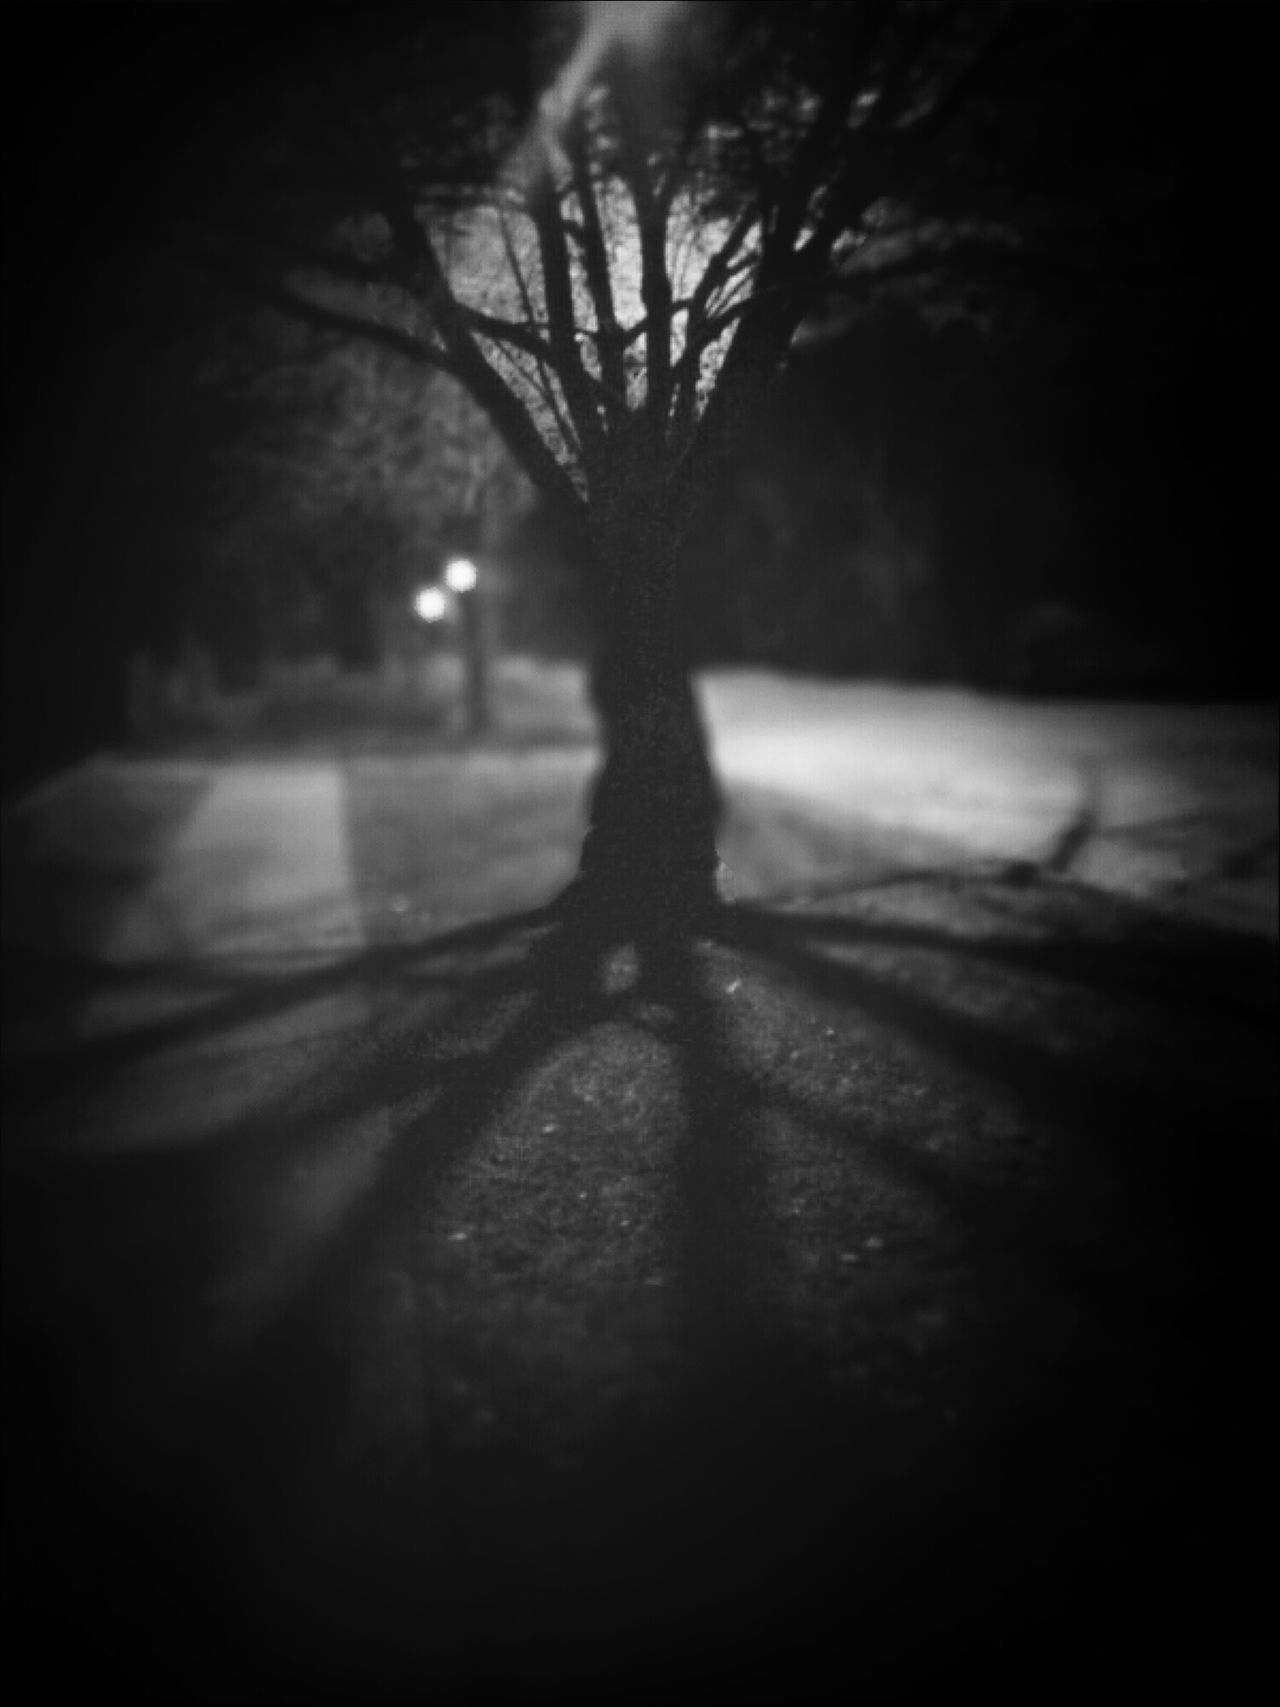 rooted Phoneography Andrography Ifeelmysterioustoday Picturesque